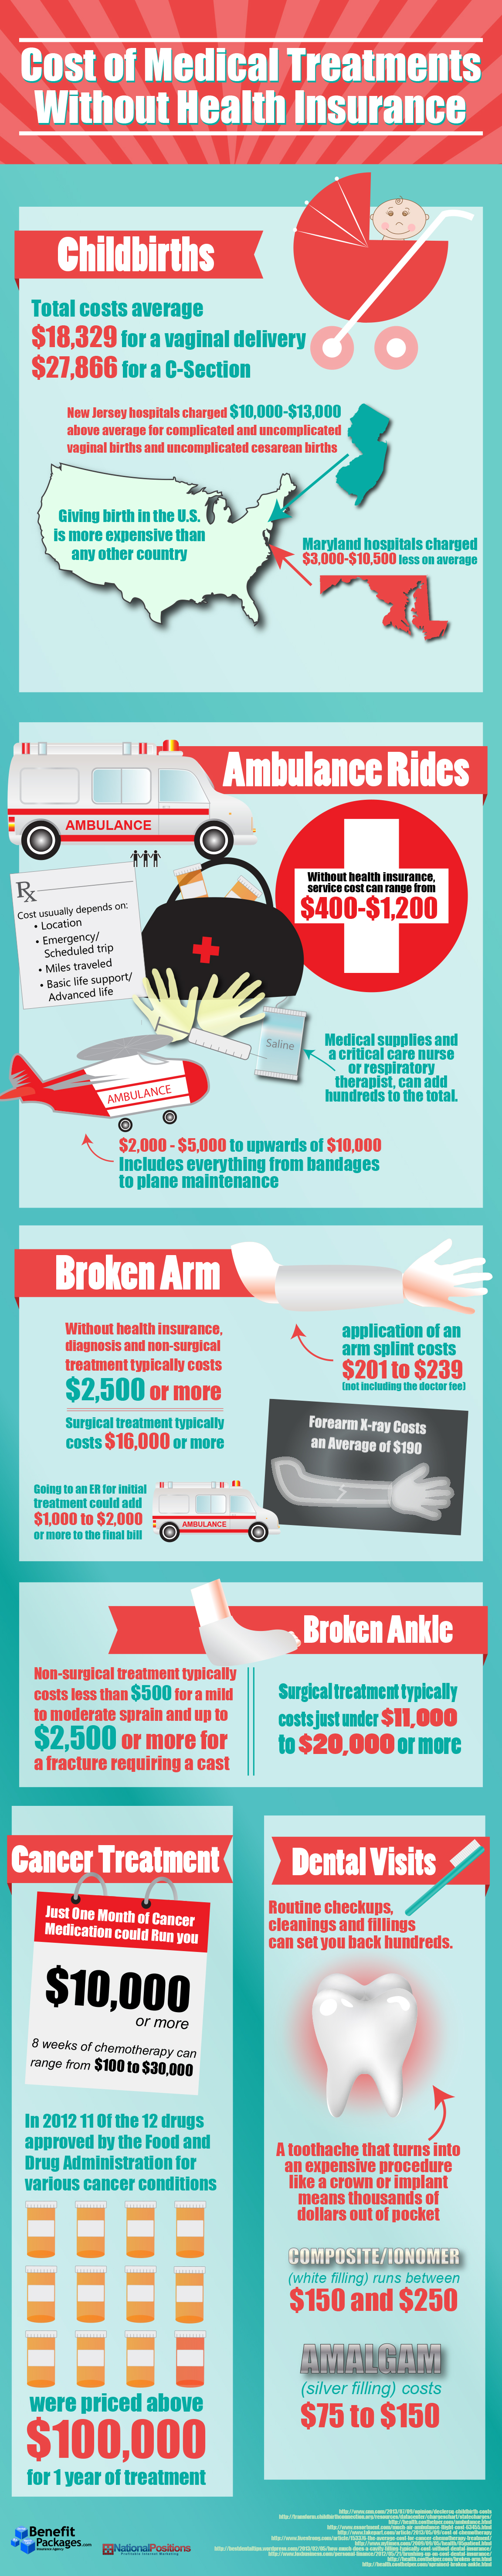 Cost of Medical Treatments Without Health Insurance [Infographic]